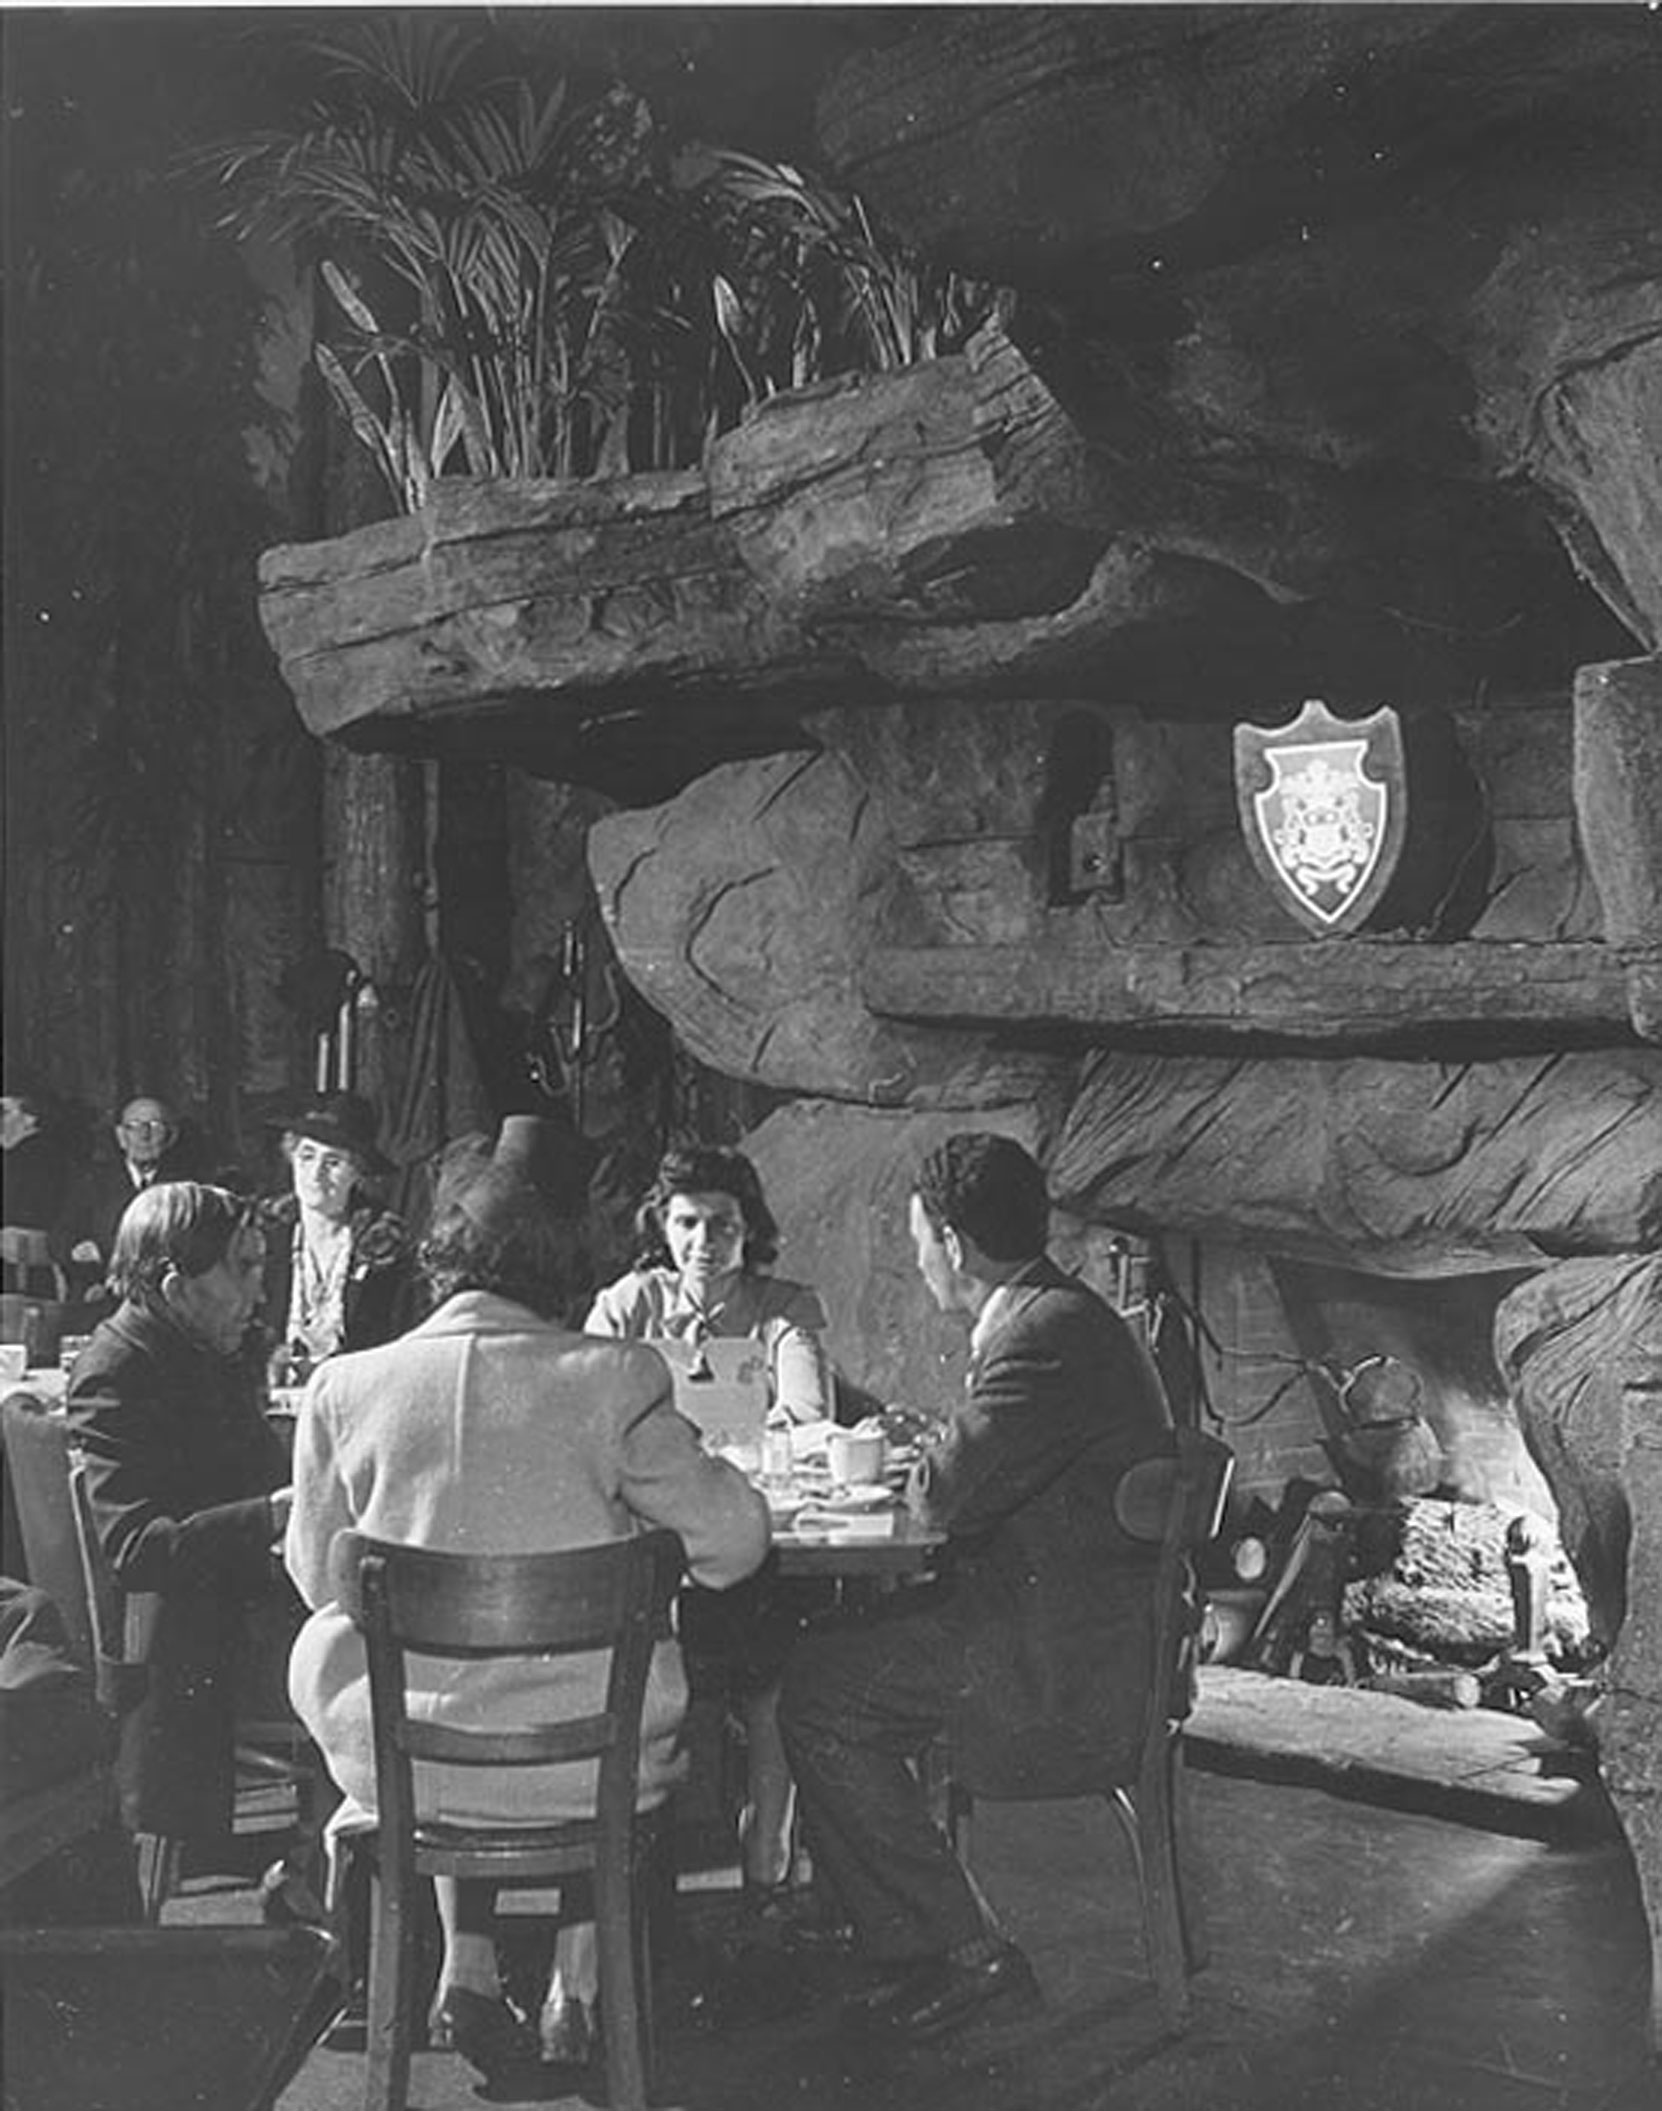 Francois Scotti installation in Clifton's Brookdale Cafeteria, 649 South Broadway, Los Angeles, CA. Francois Scotti designed and installed this piece in 1935. (courtesy of Clifton's Cafeteria)